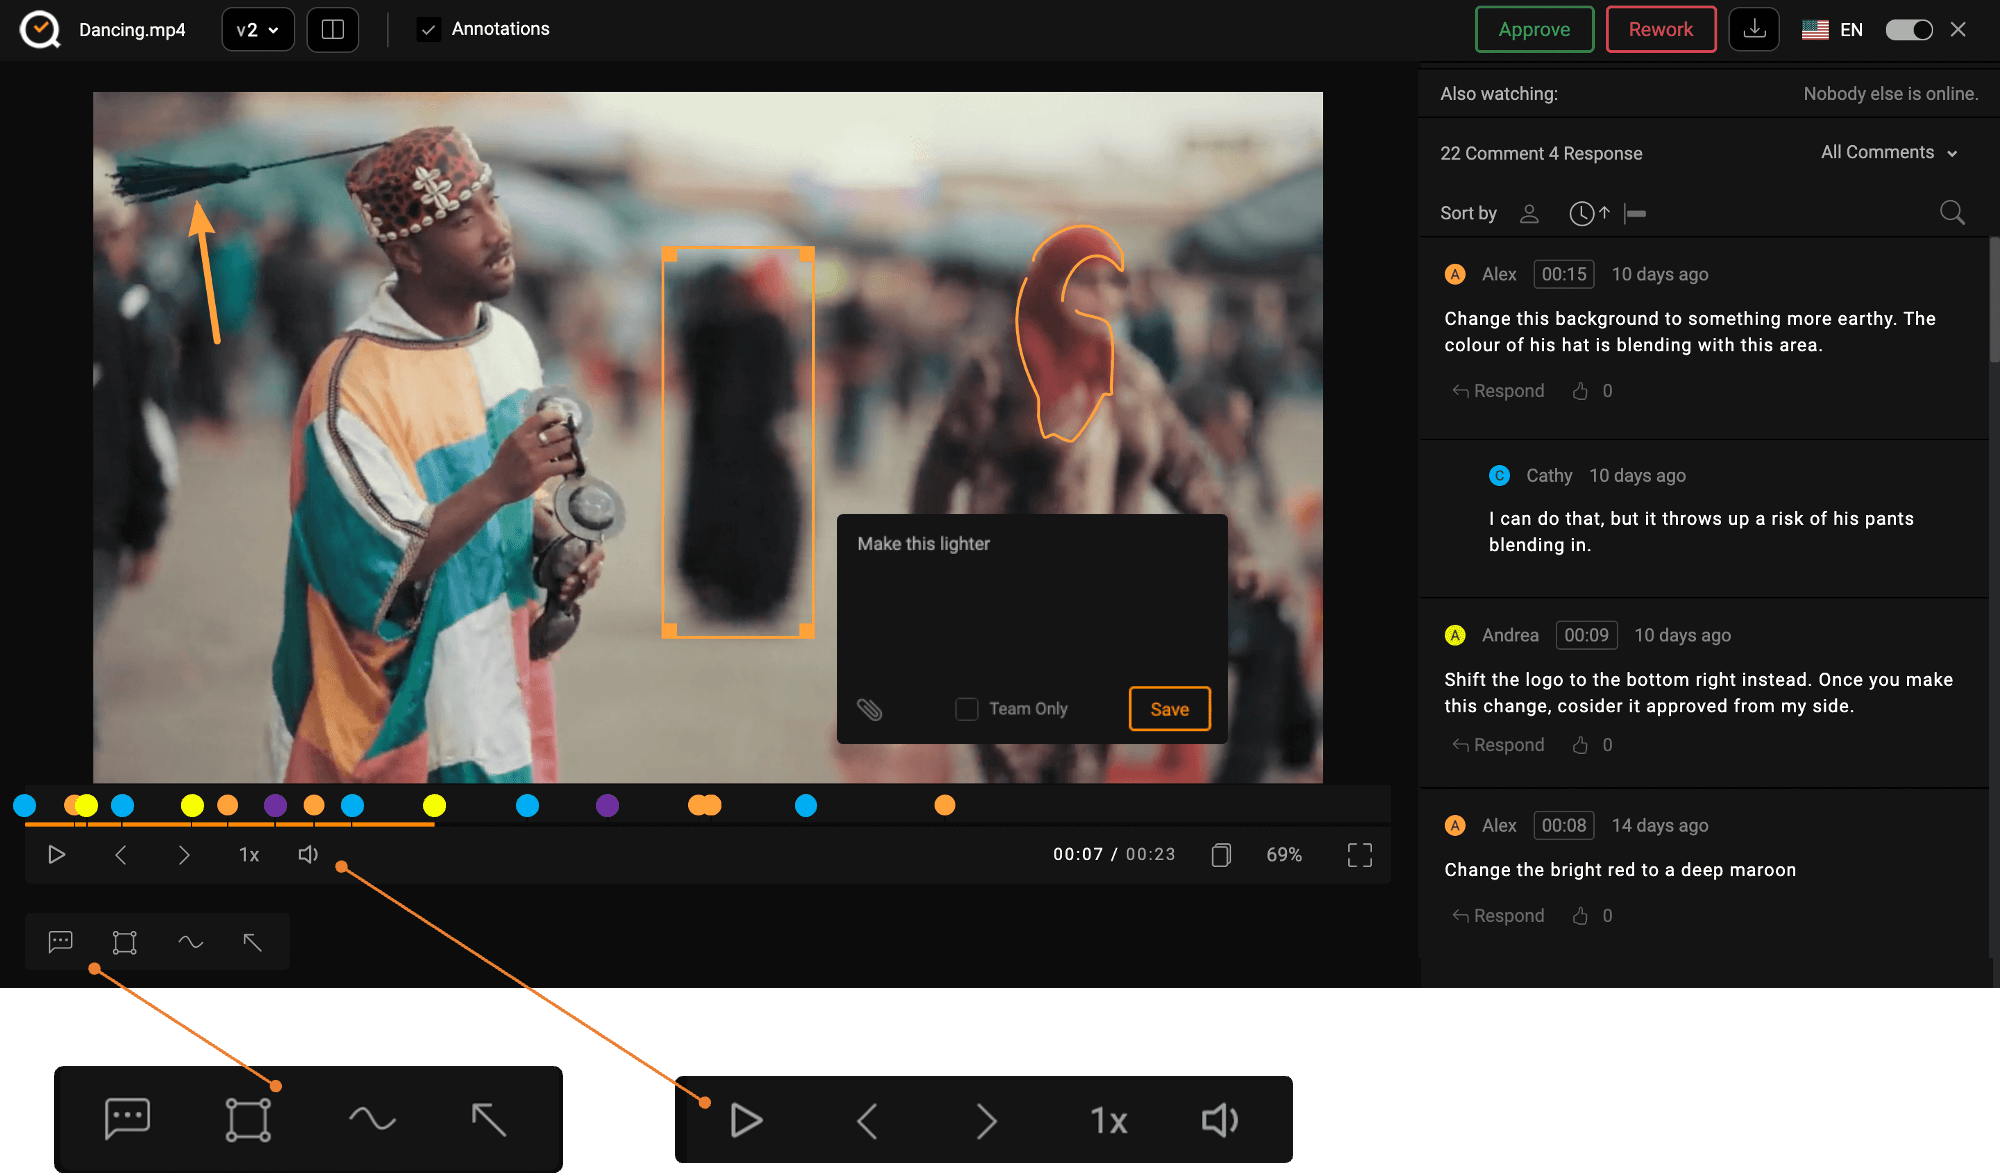 The review window lets you add comments and highlight text